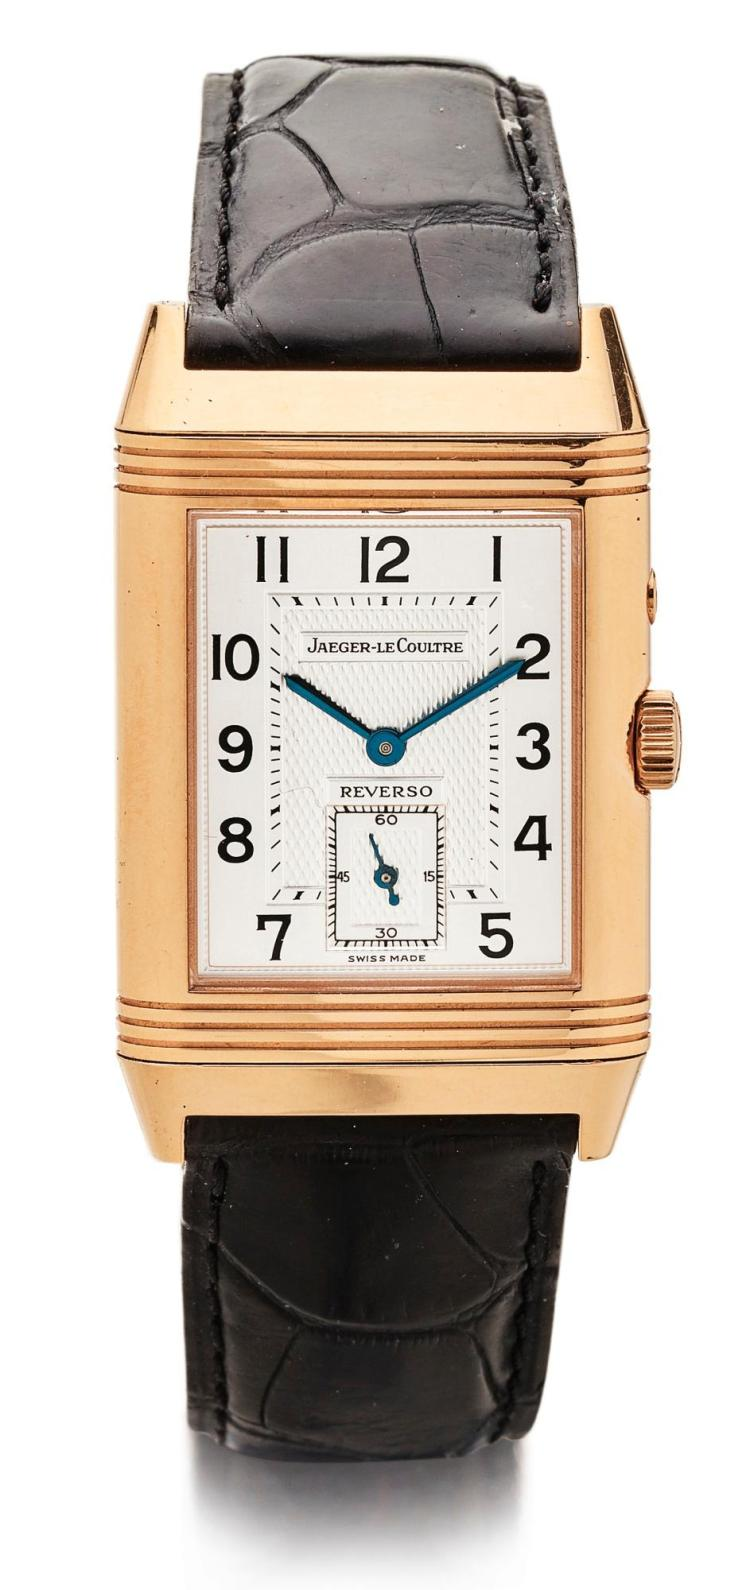 JAEGER-LECOULTRE | A PINK GOLD RECTANGULAR REVERSIBLE DOUBLE DIALED DUAL TIME WRISTWATCH WITH DAY/NIGHT AND 24 HOUR INDICATION REF 270254 CASE 1873842 REVERSO CIRCA 2000